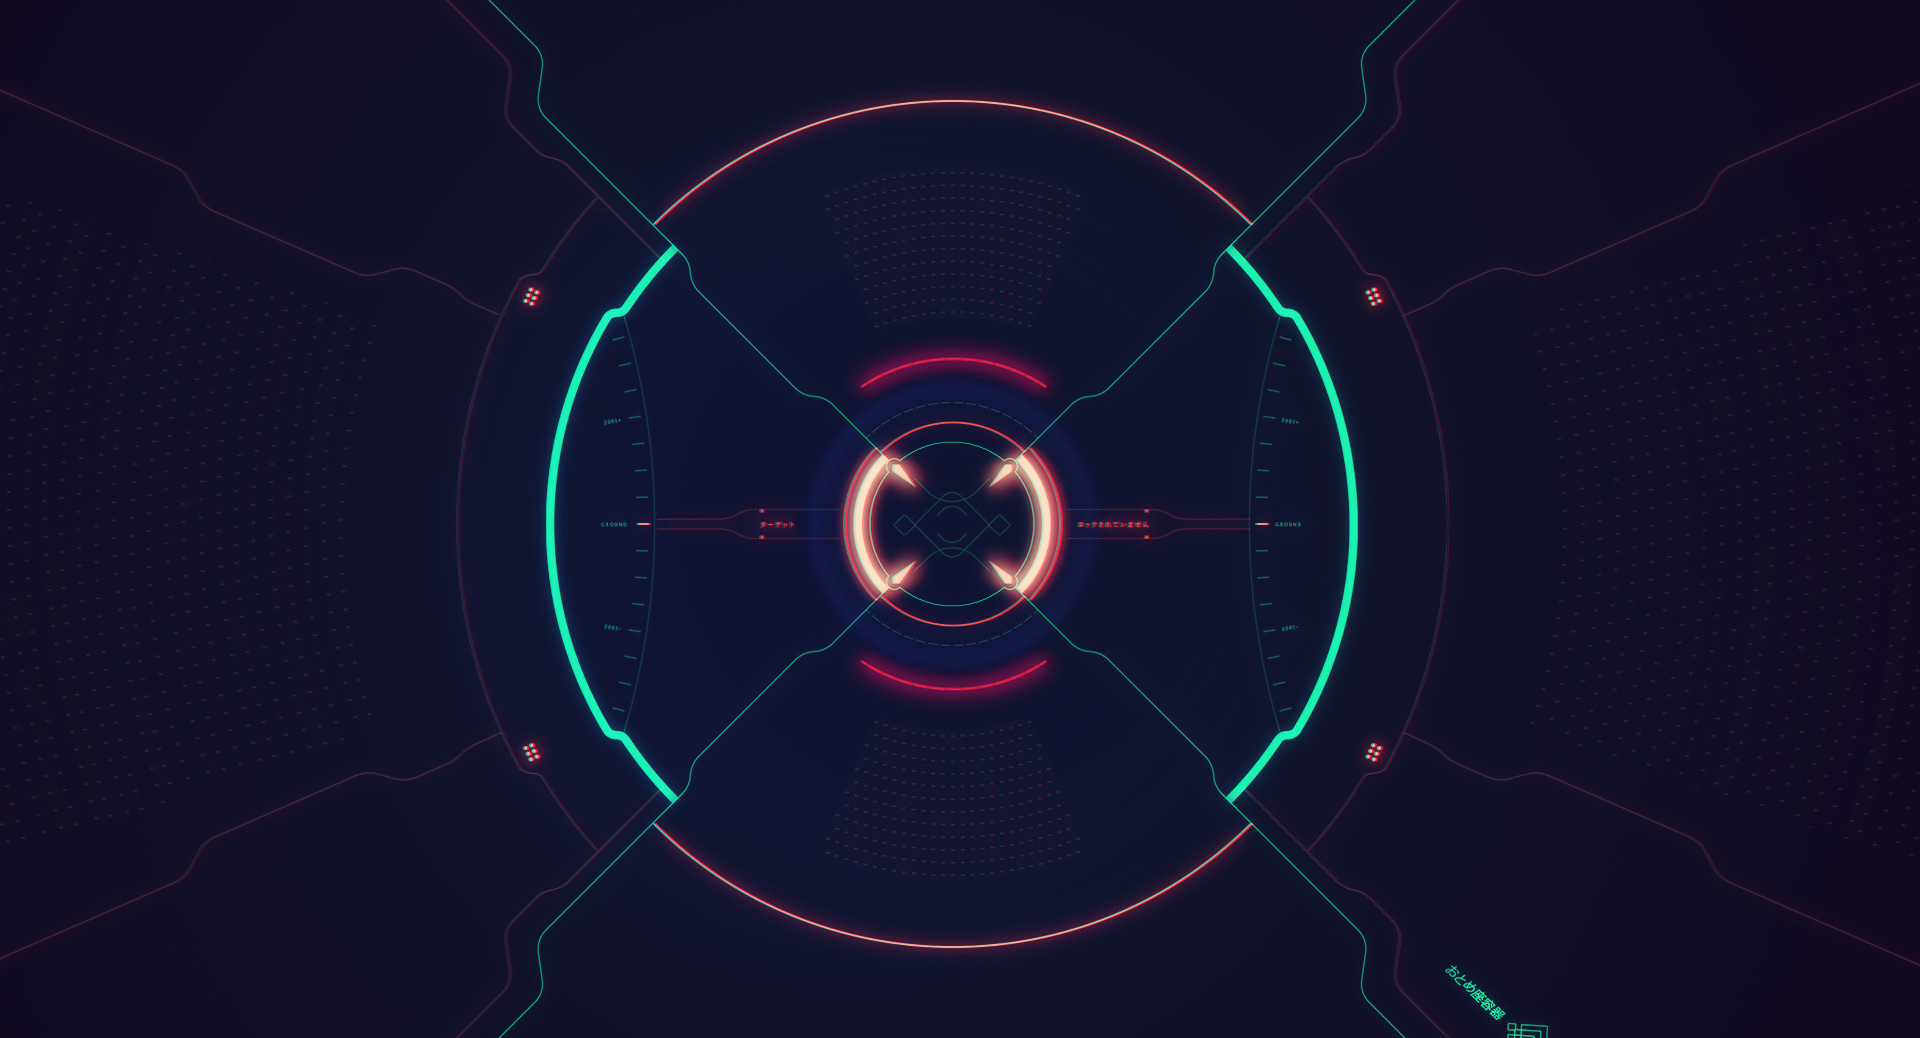 Another_crosshair_Alien_ish_style_ORIGINAL_3_1920px